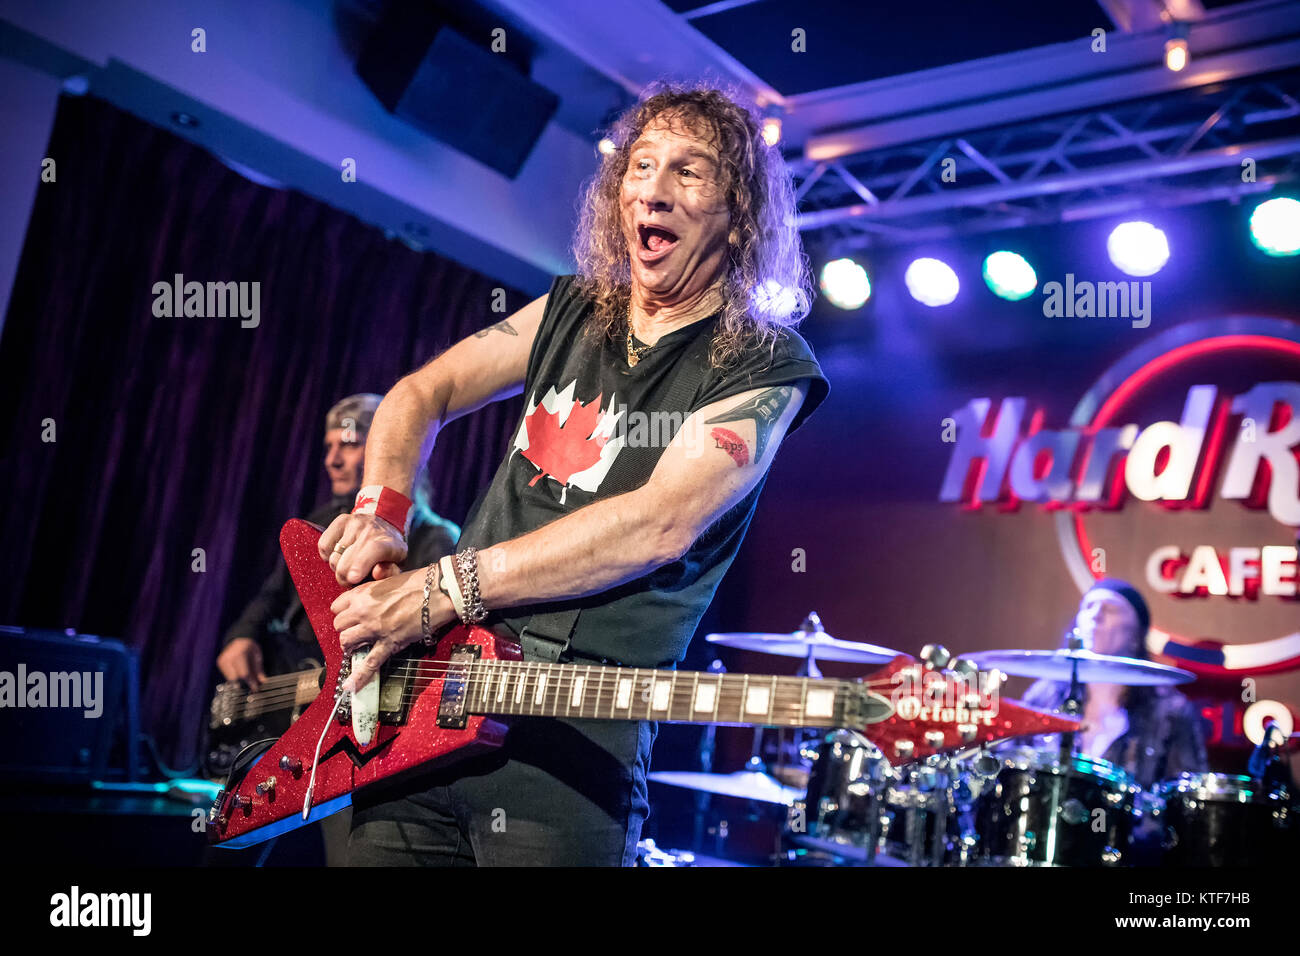 The Canadian heavy metal band Anvil performs a live concert